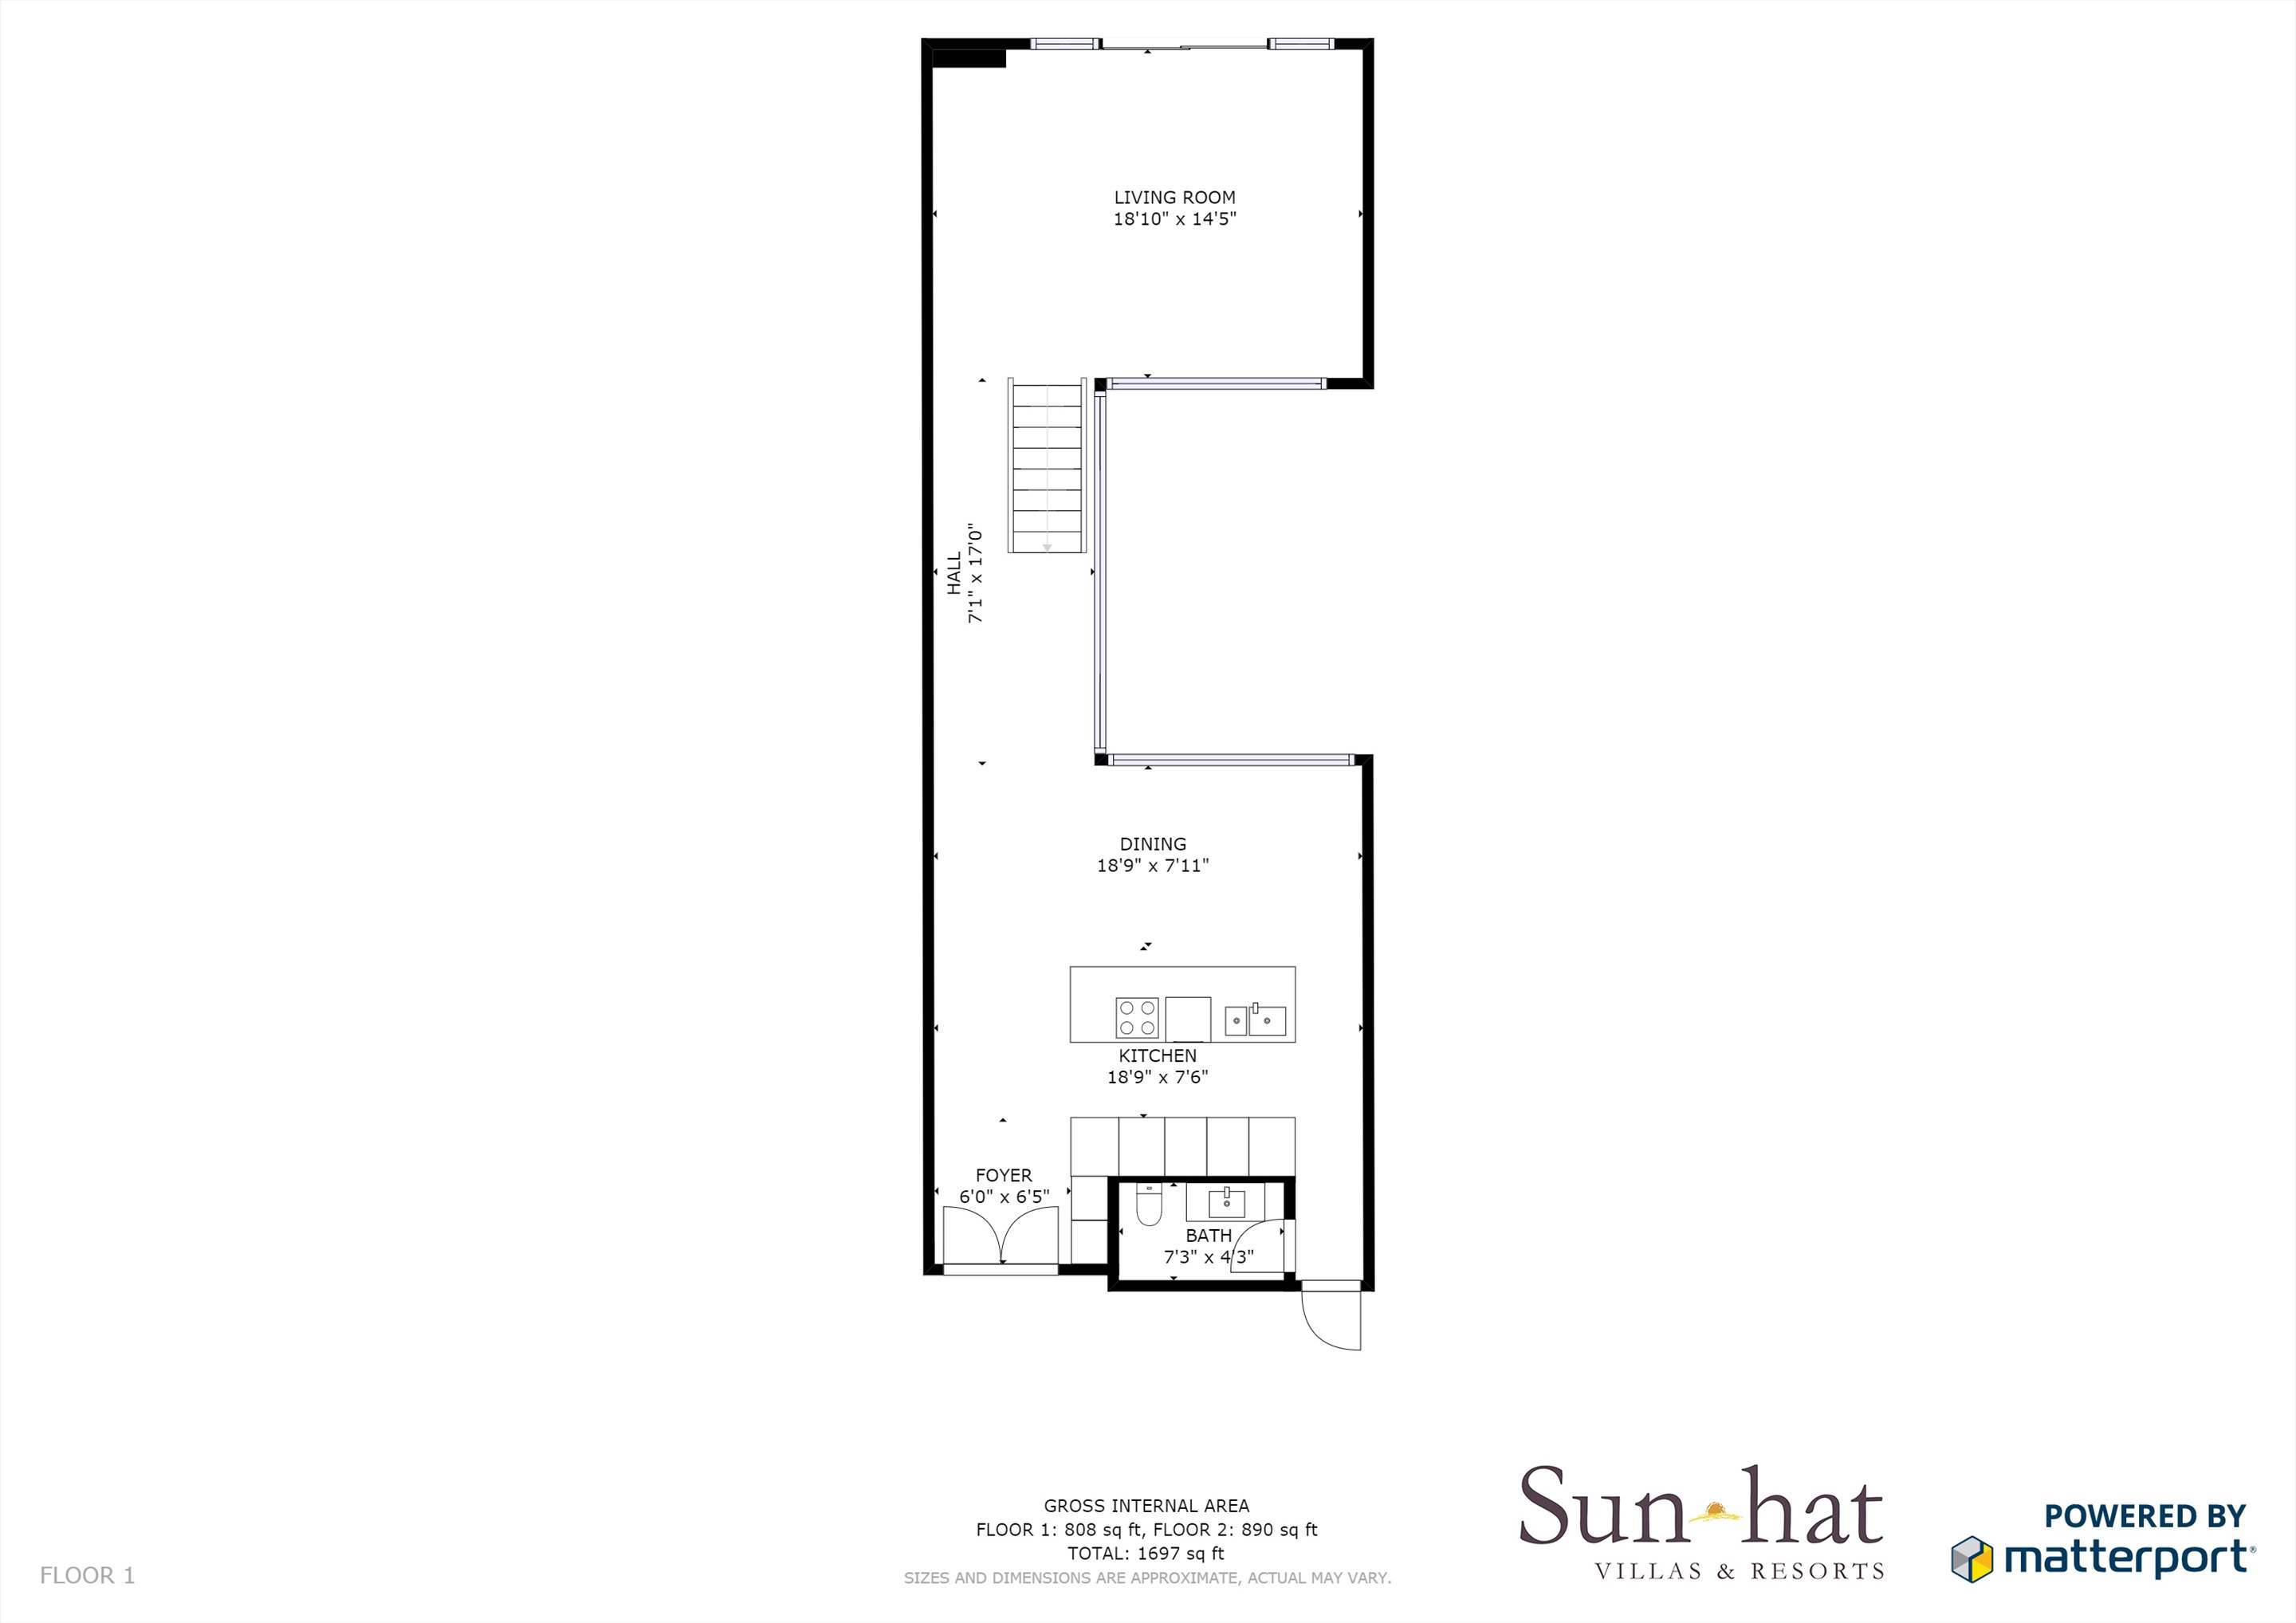 Pine Cliffs Terraces, 4 Bedroom, room only basis Floorplan #1